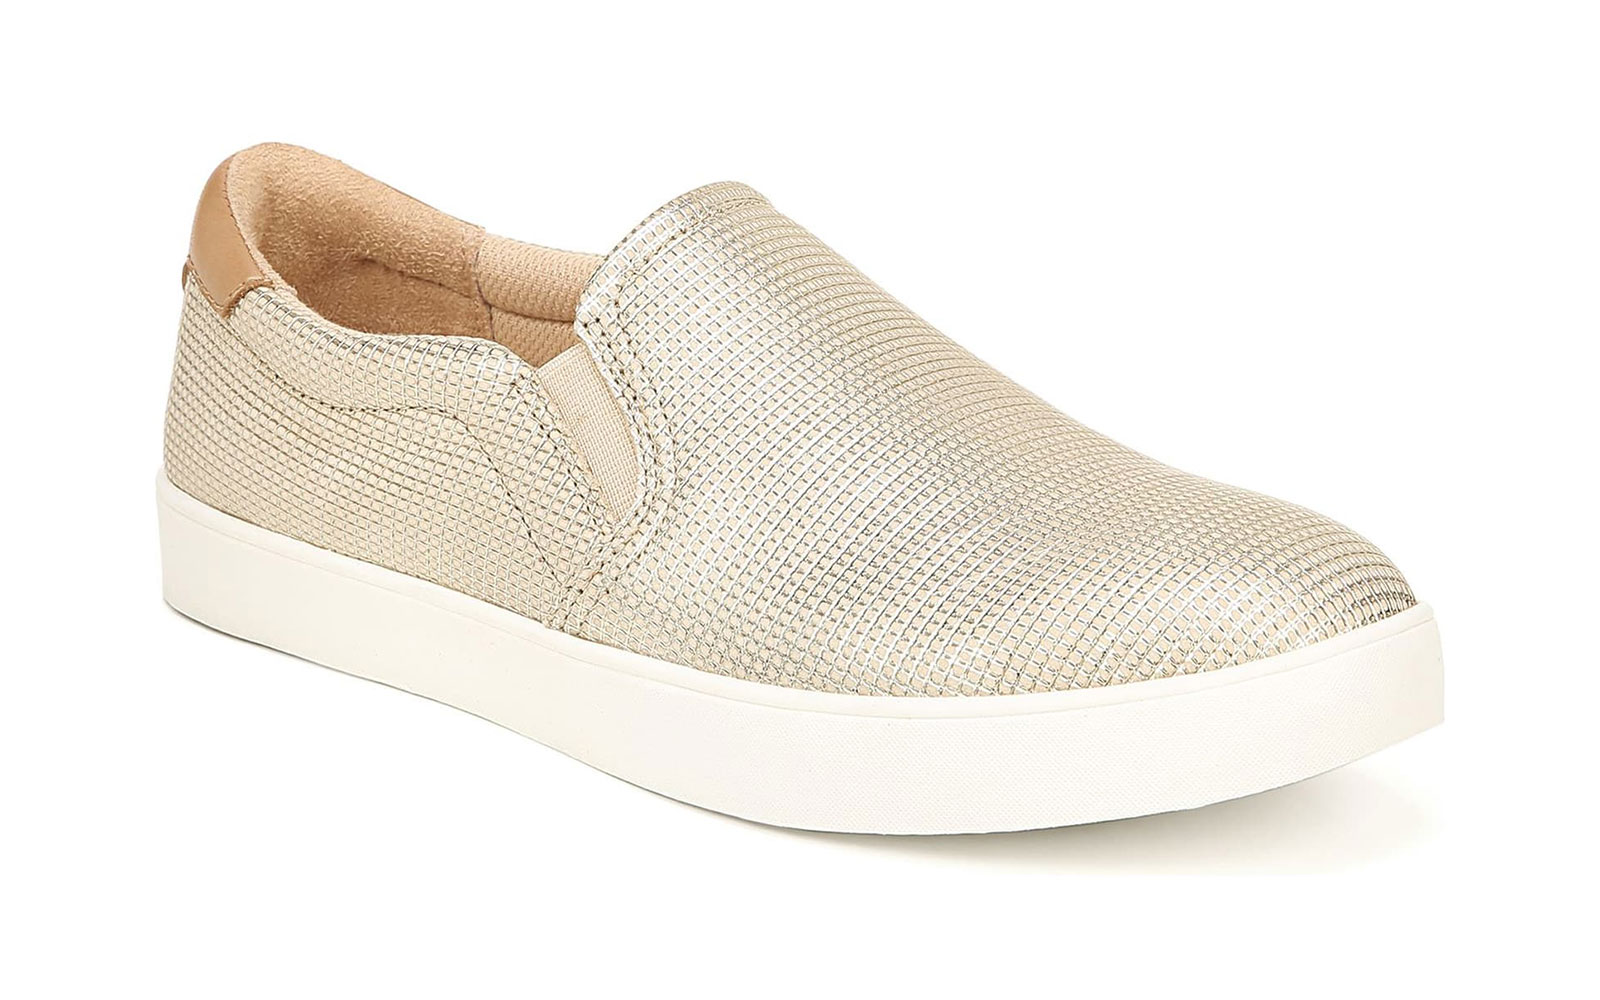 Dr. Scholl's Original Collection Scout Slip-on Sneaker